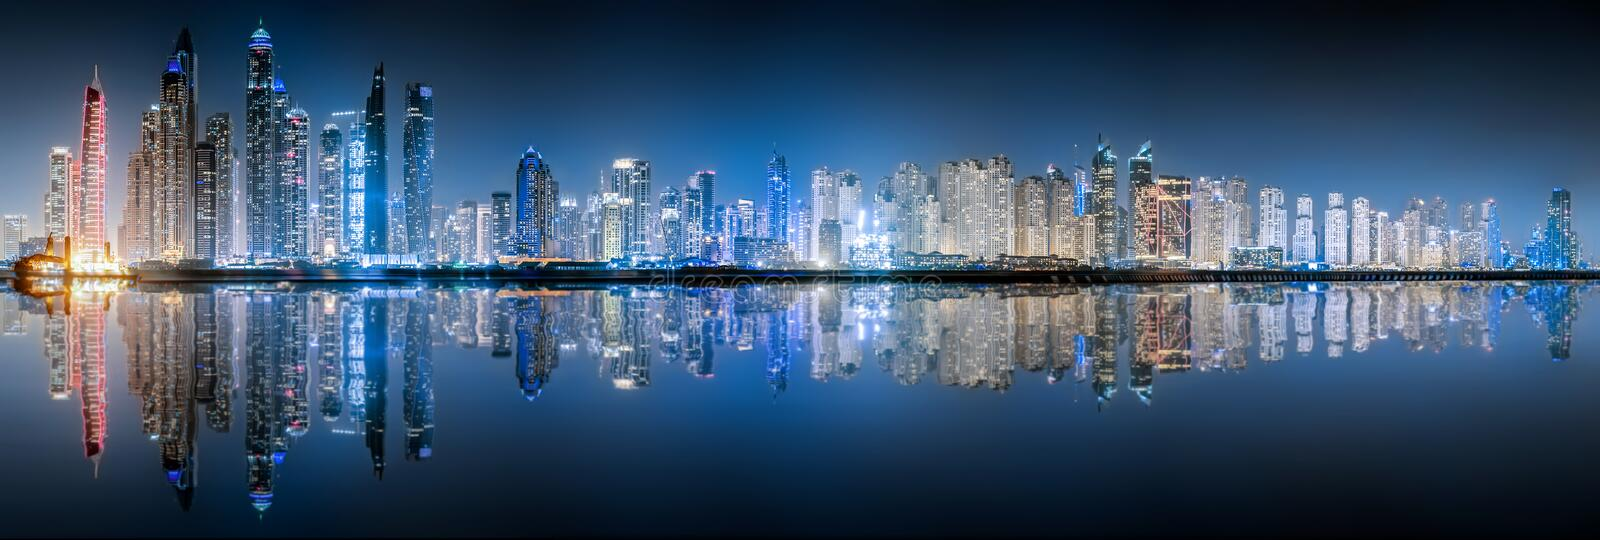 A skyline do porto de Dubai na noite foto de stock royalty free